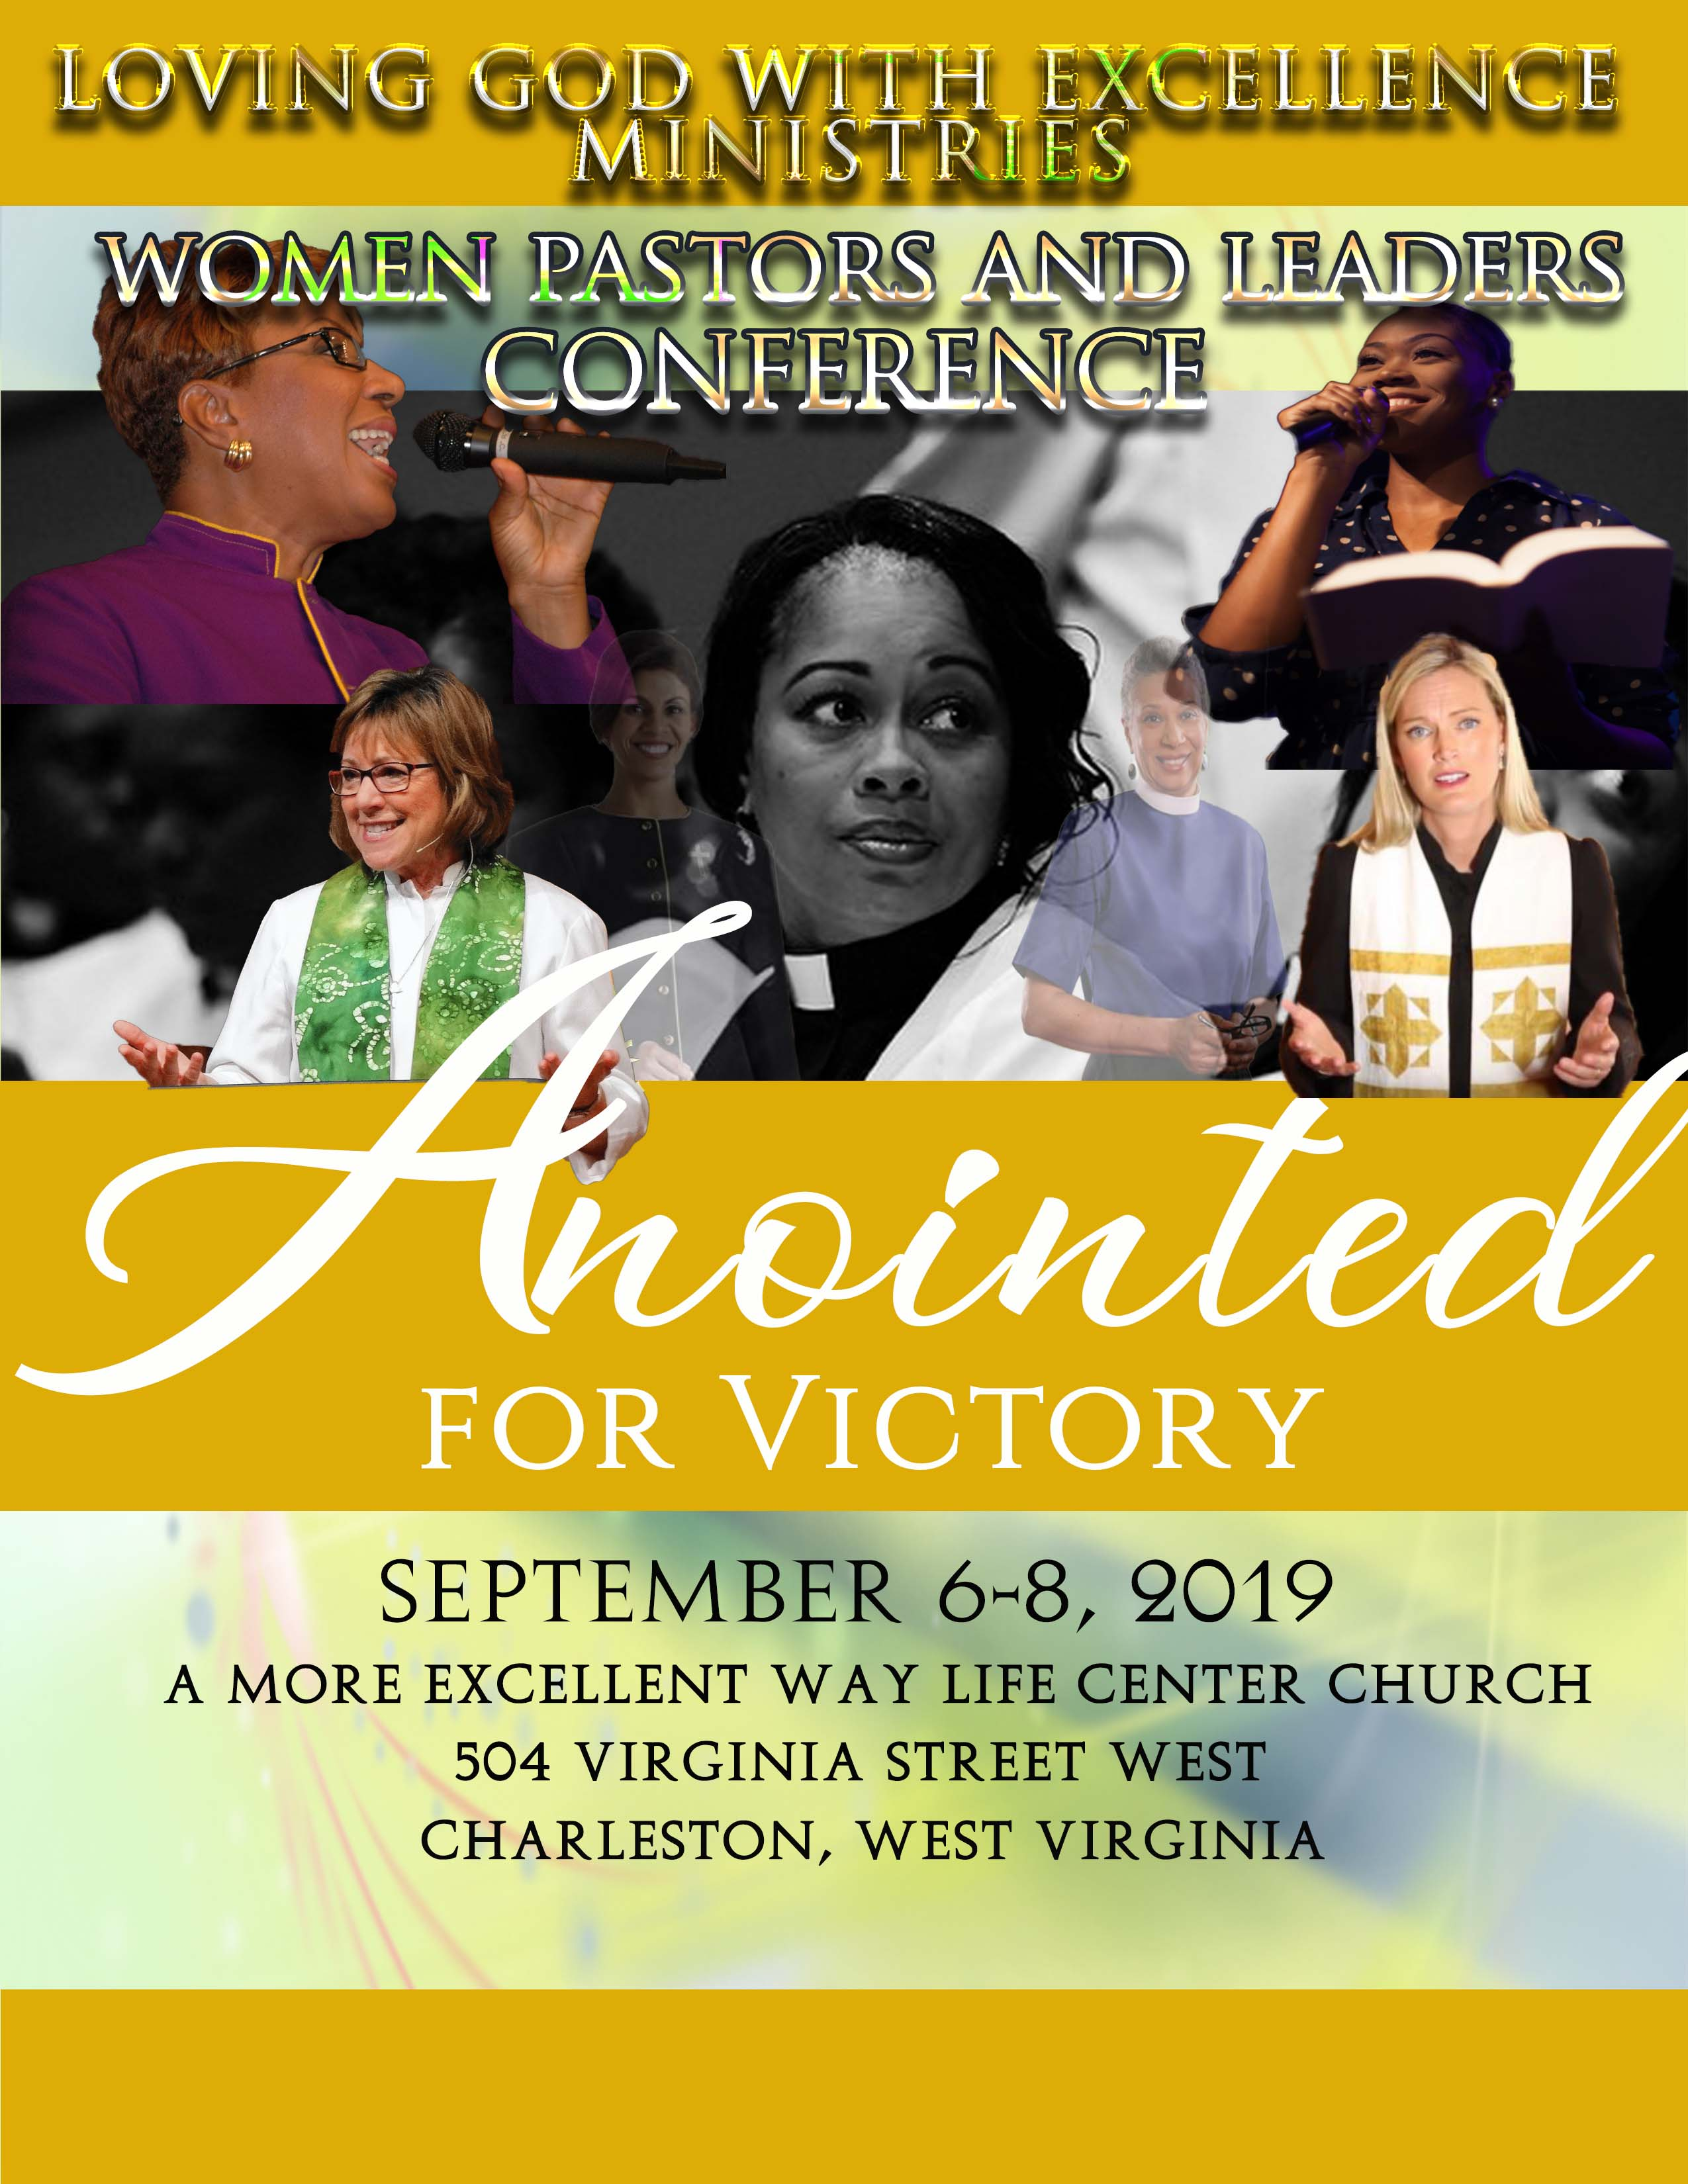 Women Pastors and Leaders Conference 2019